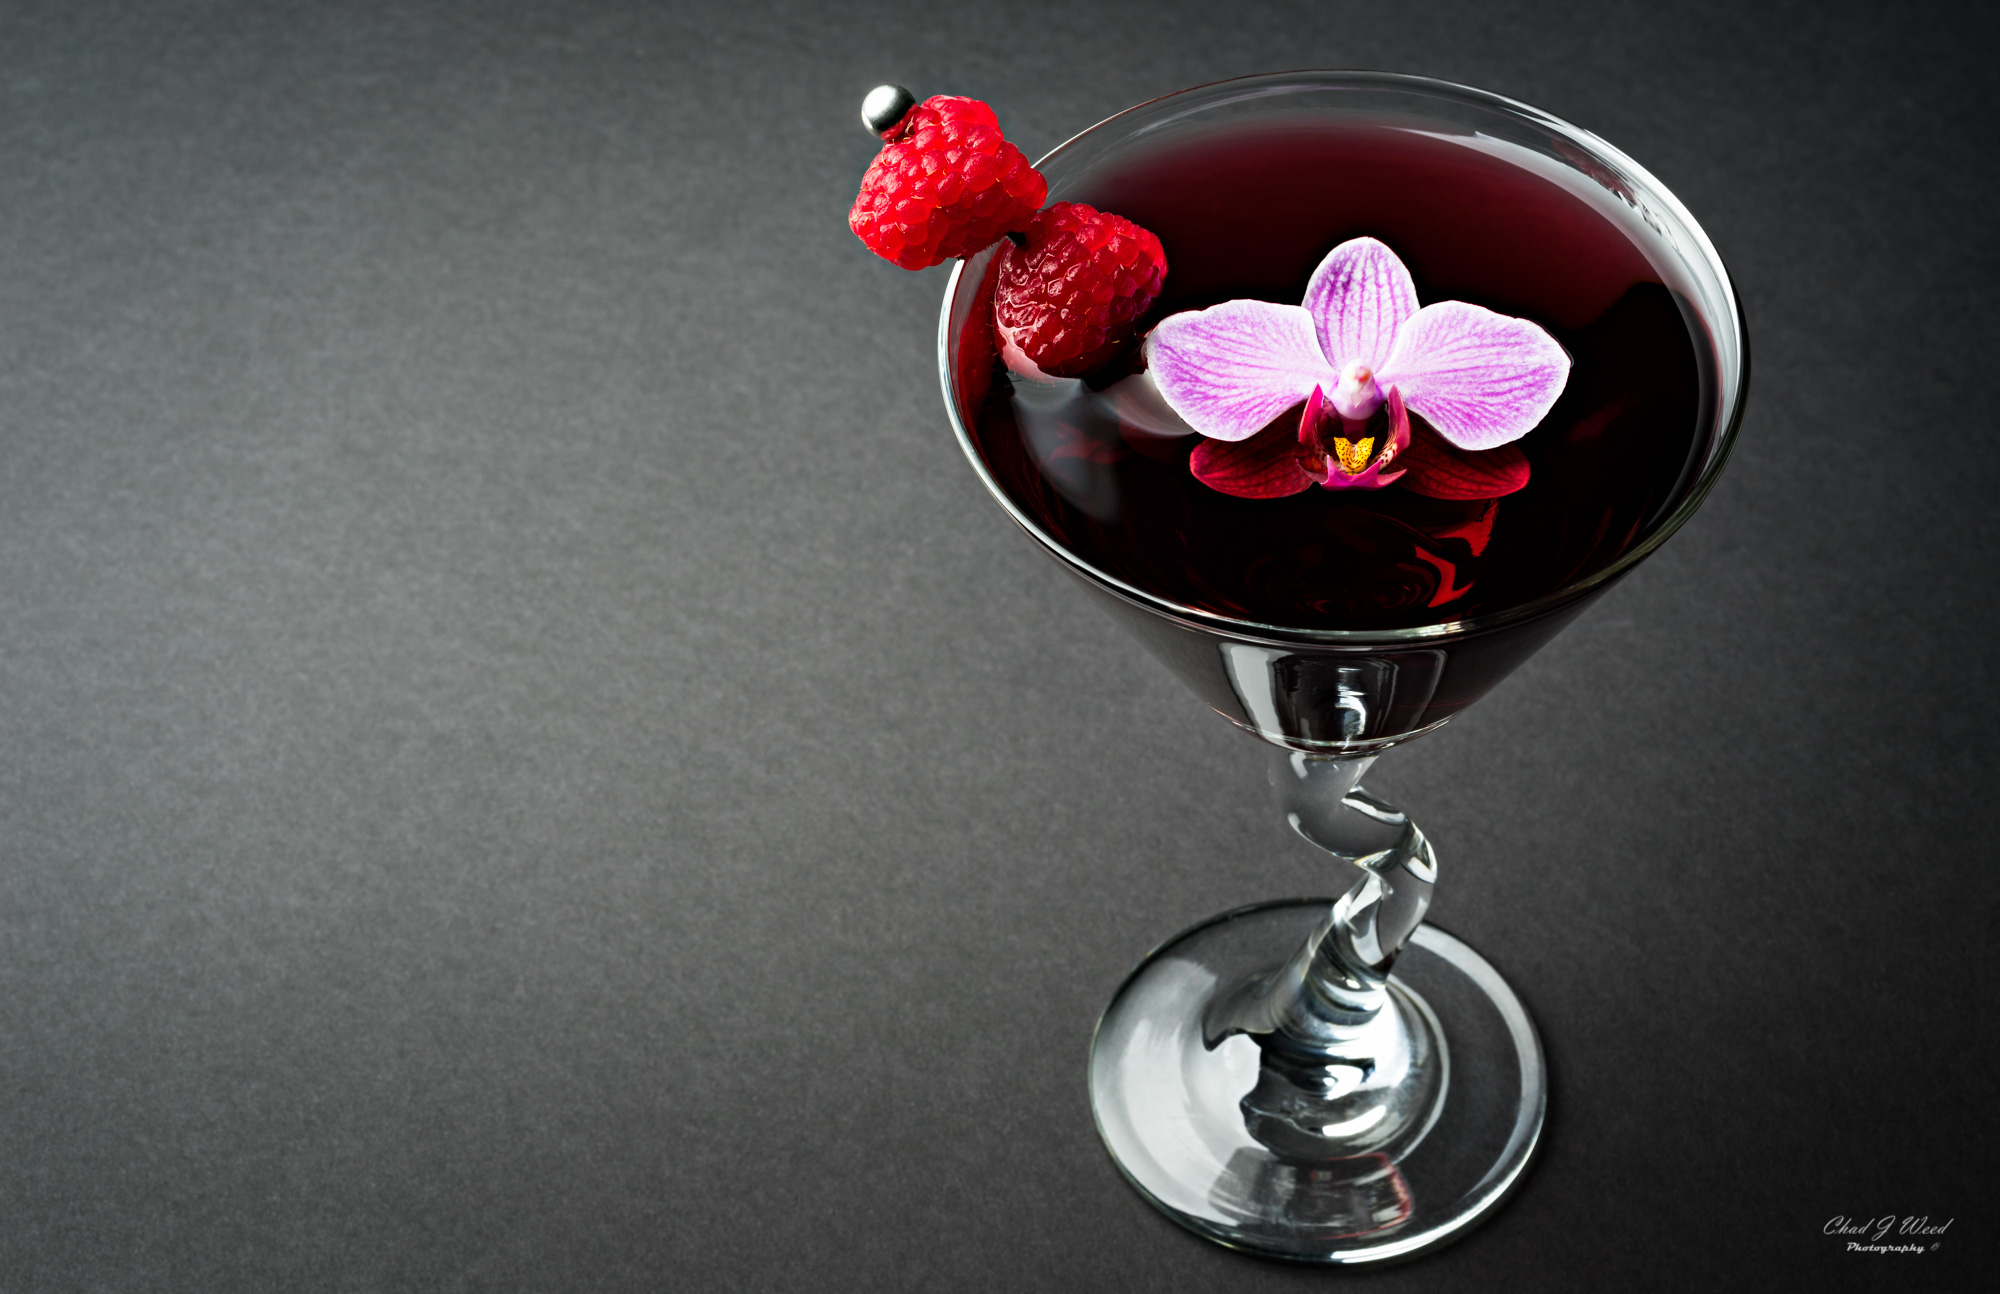 Dee's Martini by Arizona Commercial Food and Beverage Photographer Chad J Weed